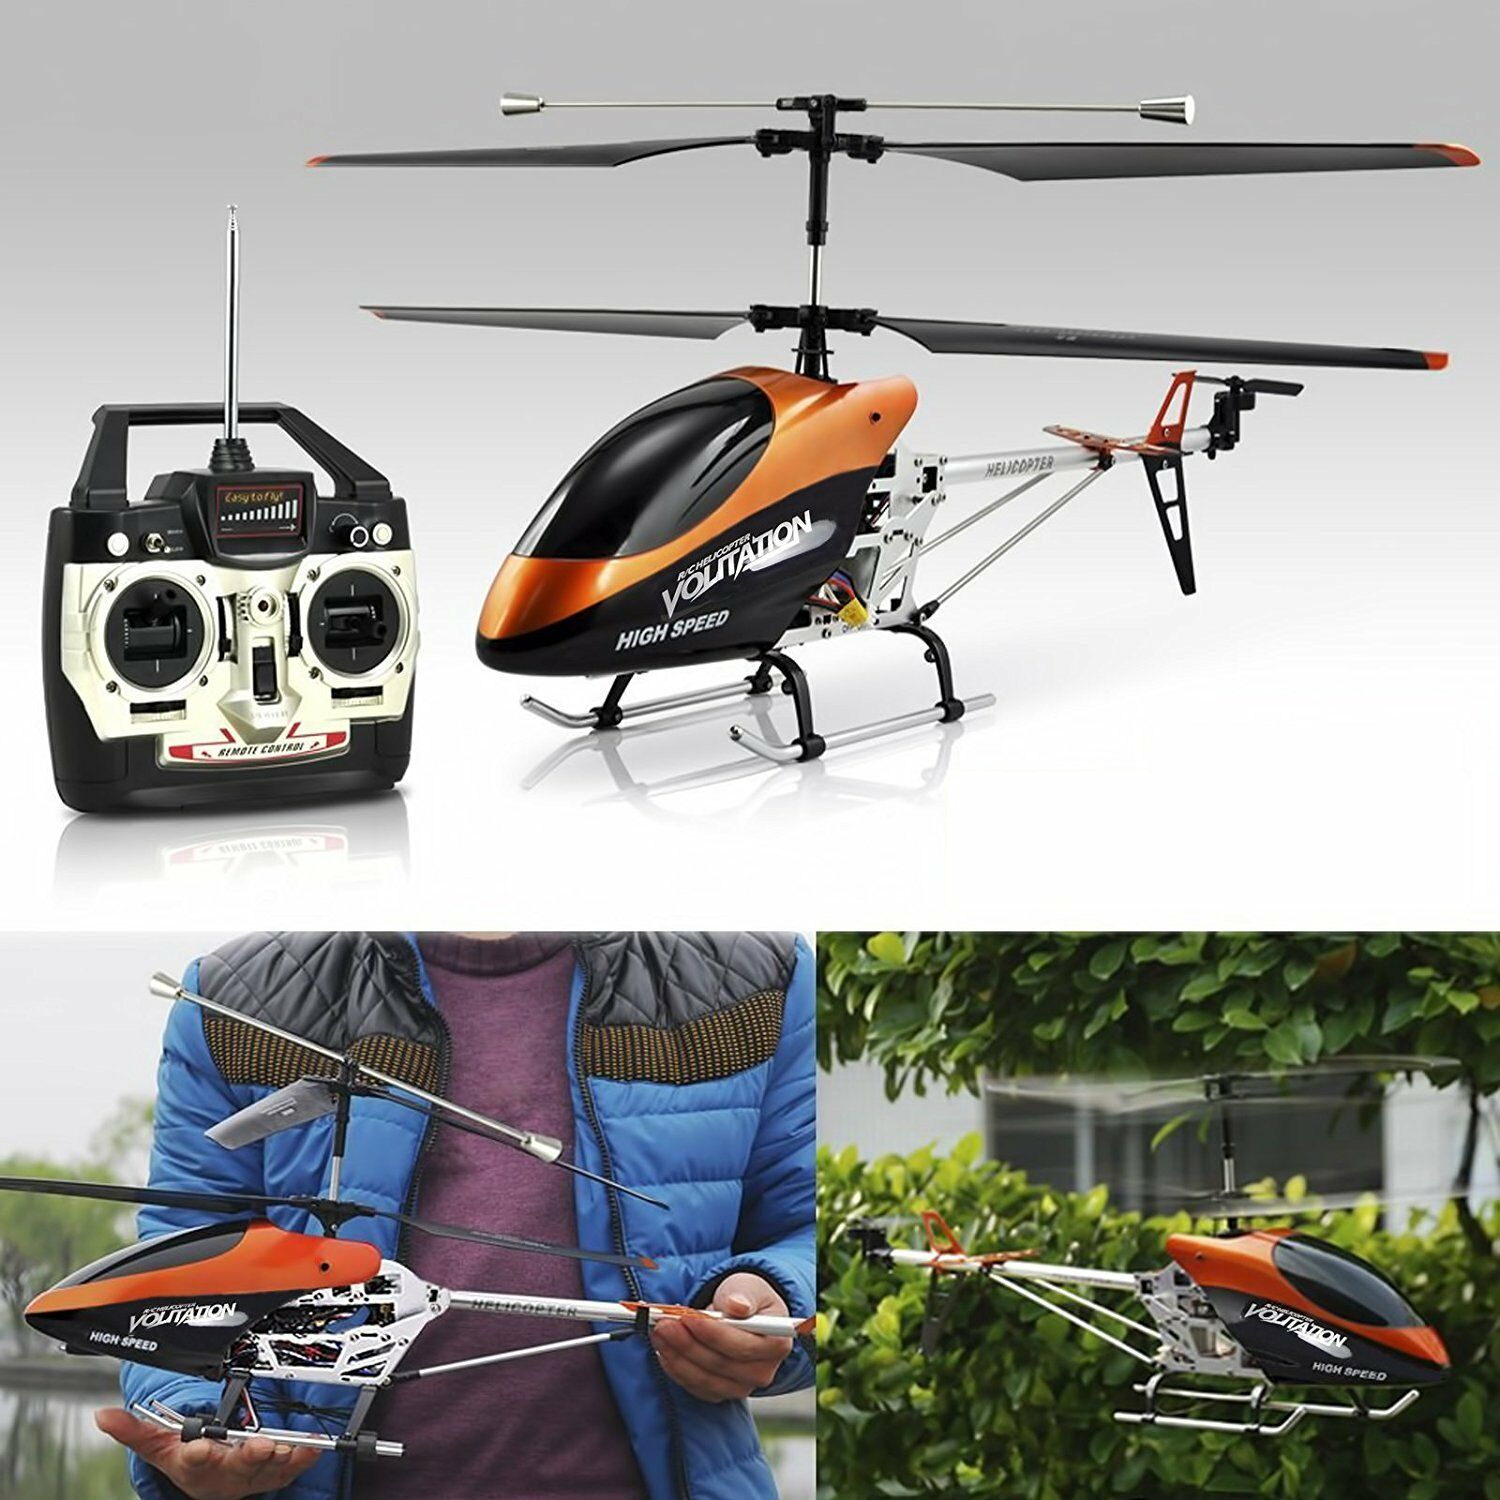 LARGE HELICOPTER DOUBLE HORSE VOLITATION ALLOY METAL FRAME RC GYROSCOPE 9053G